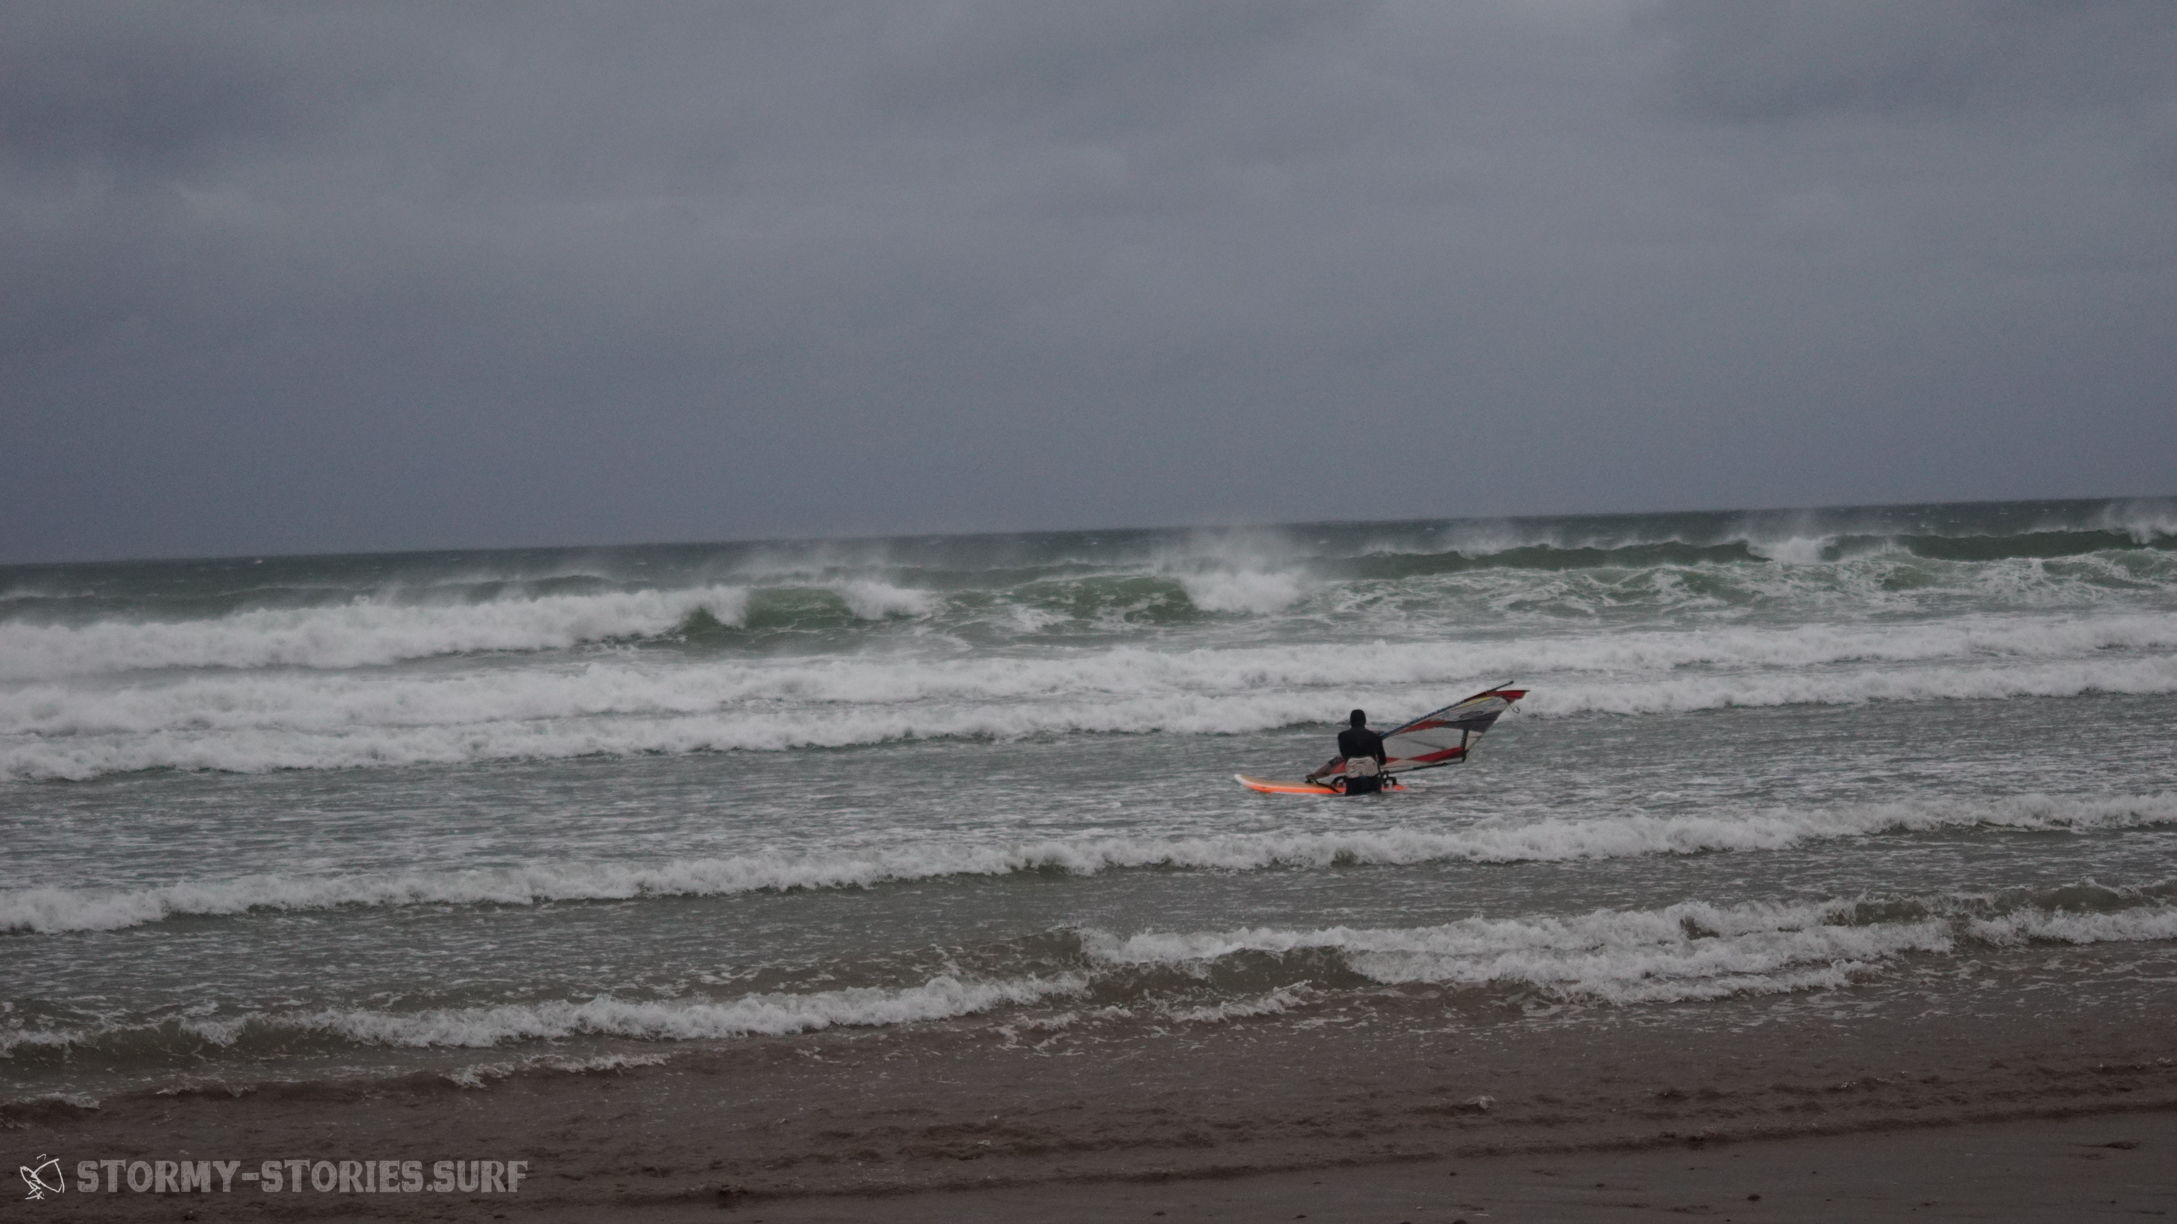 windsurf-stormy-stories-surf-travel-blog-ireland-irland-11-06-brandon-bay-stradbally-WM-35p-DSC09180